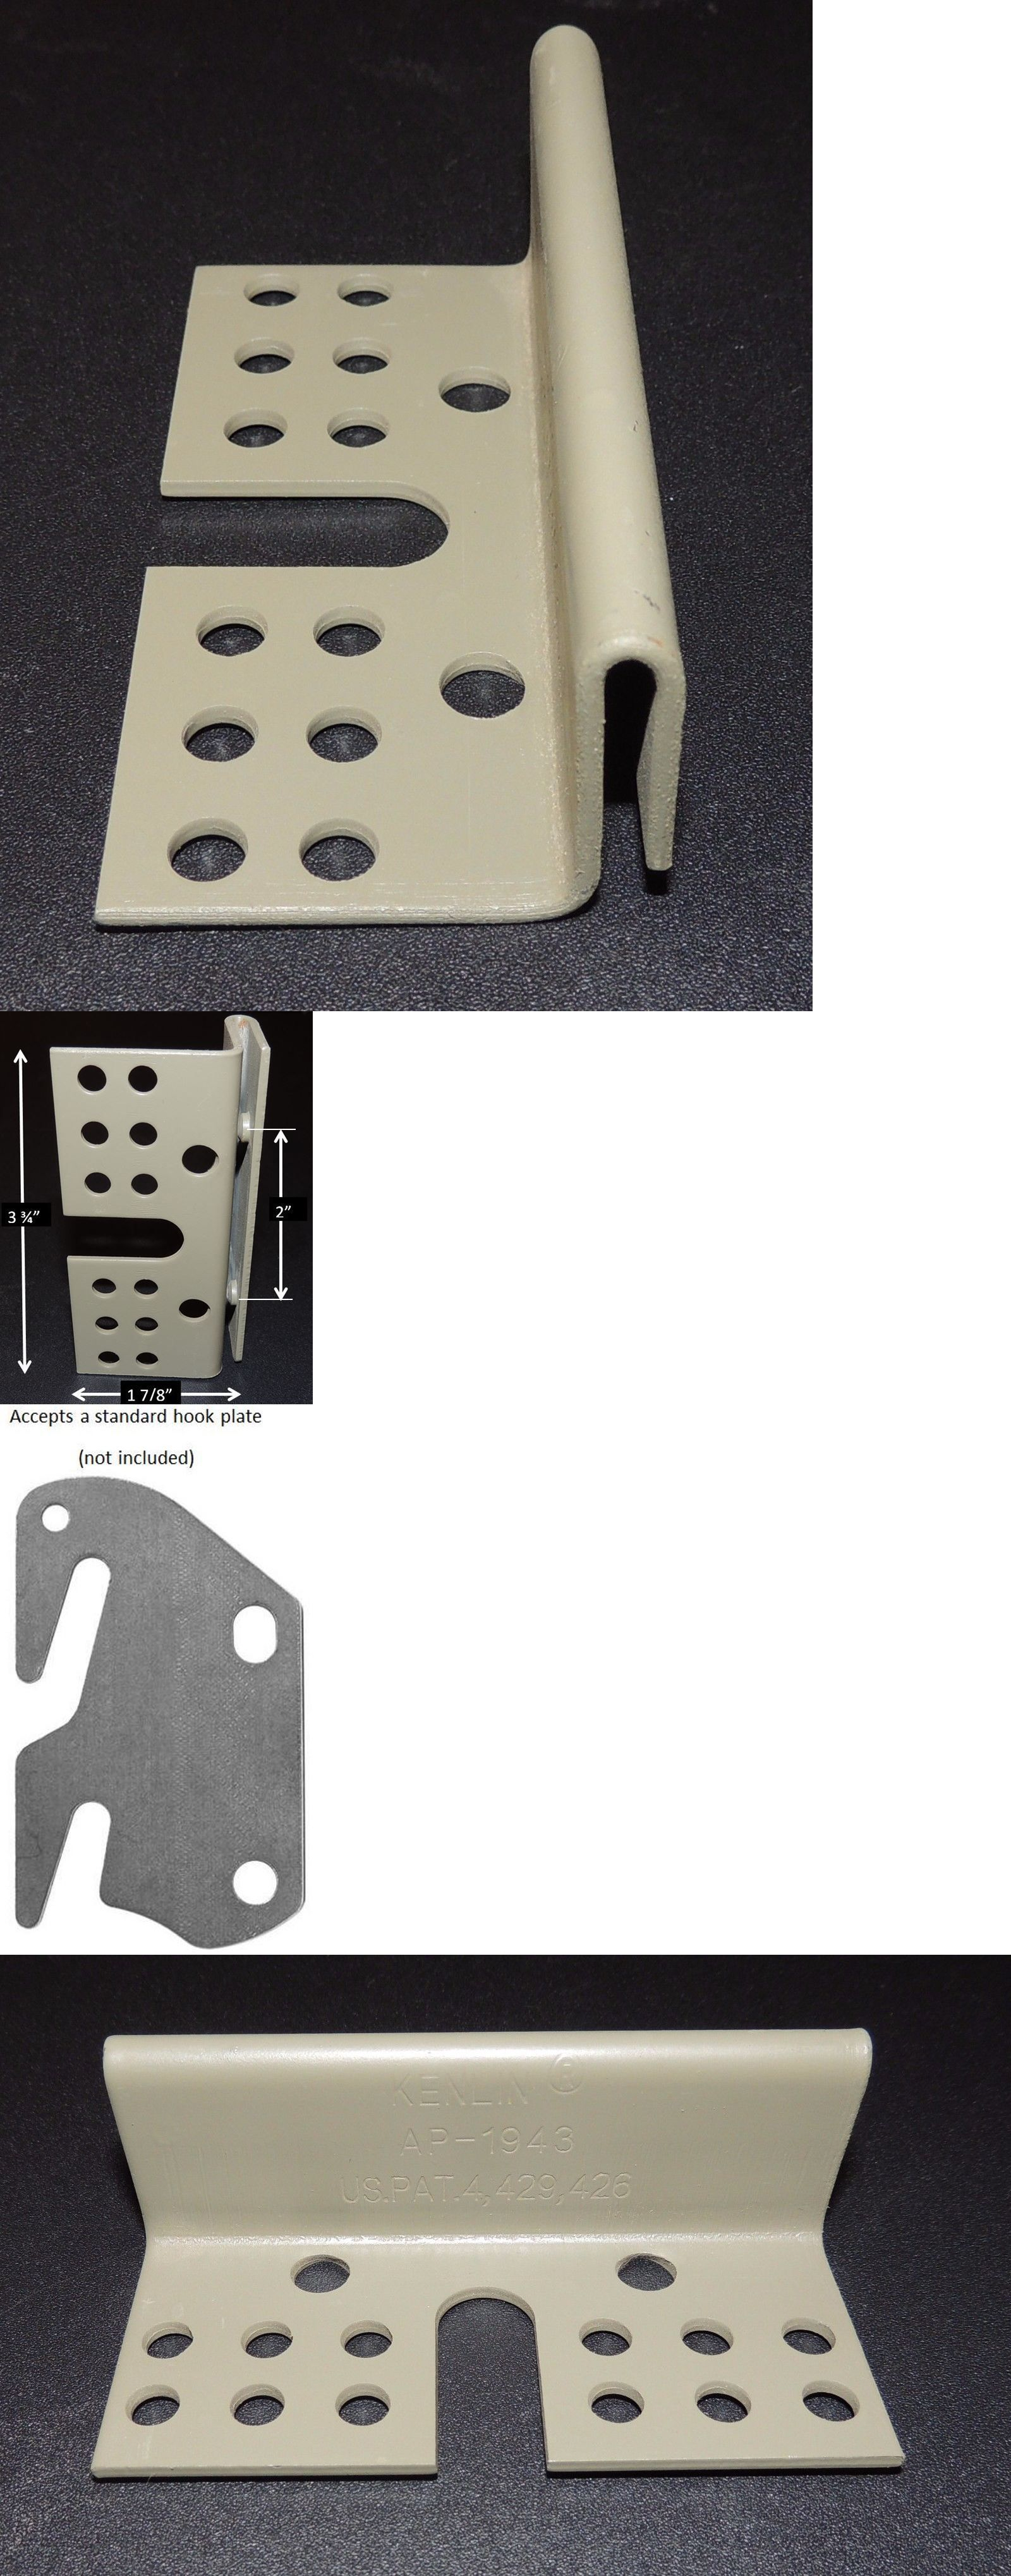 Bed and Waterbed Accessories 66737 Bed Rail Receiver